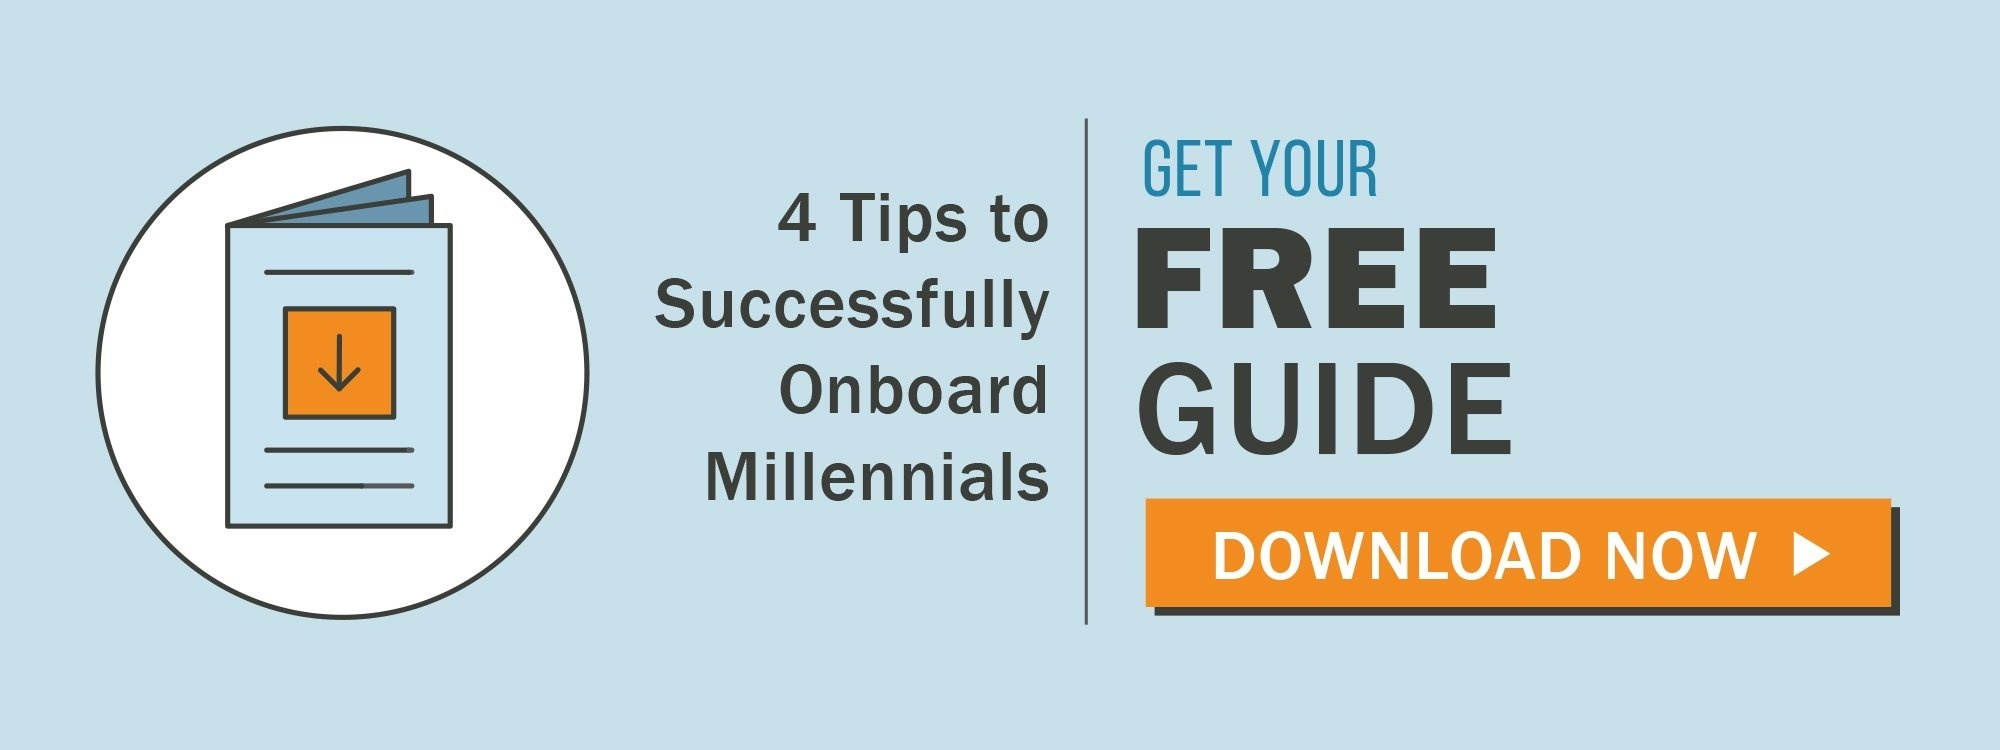 4 Tips to Onboarding Millennials